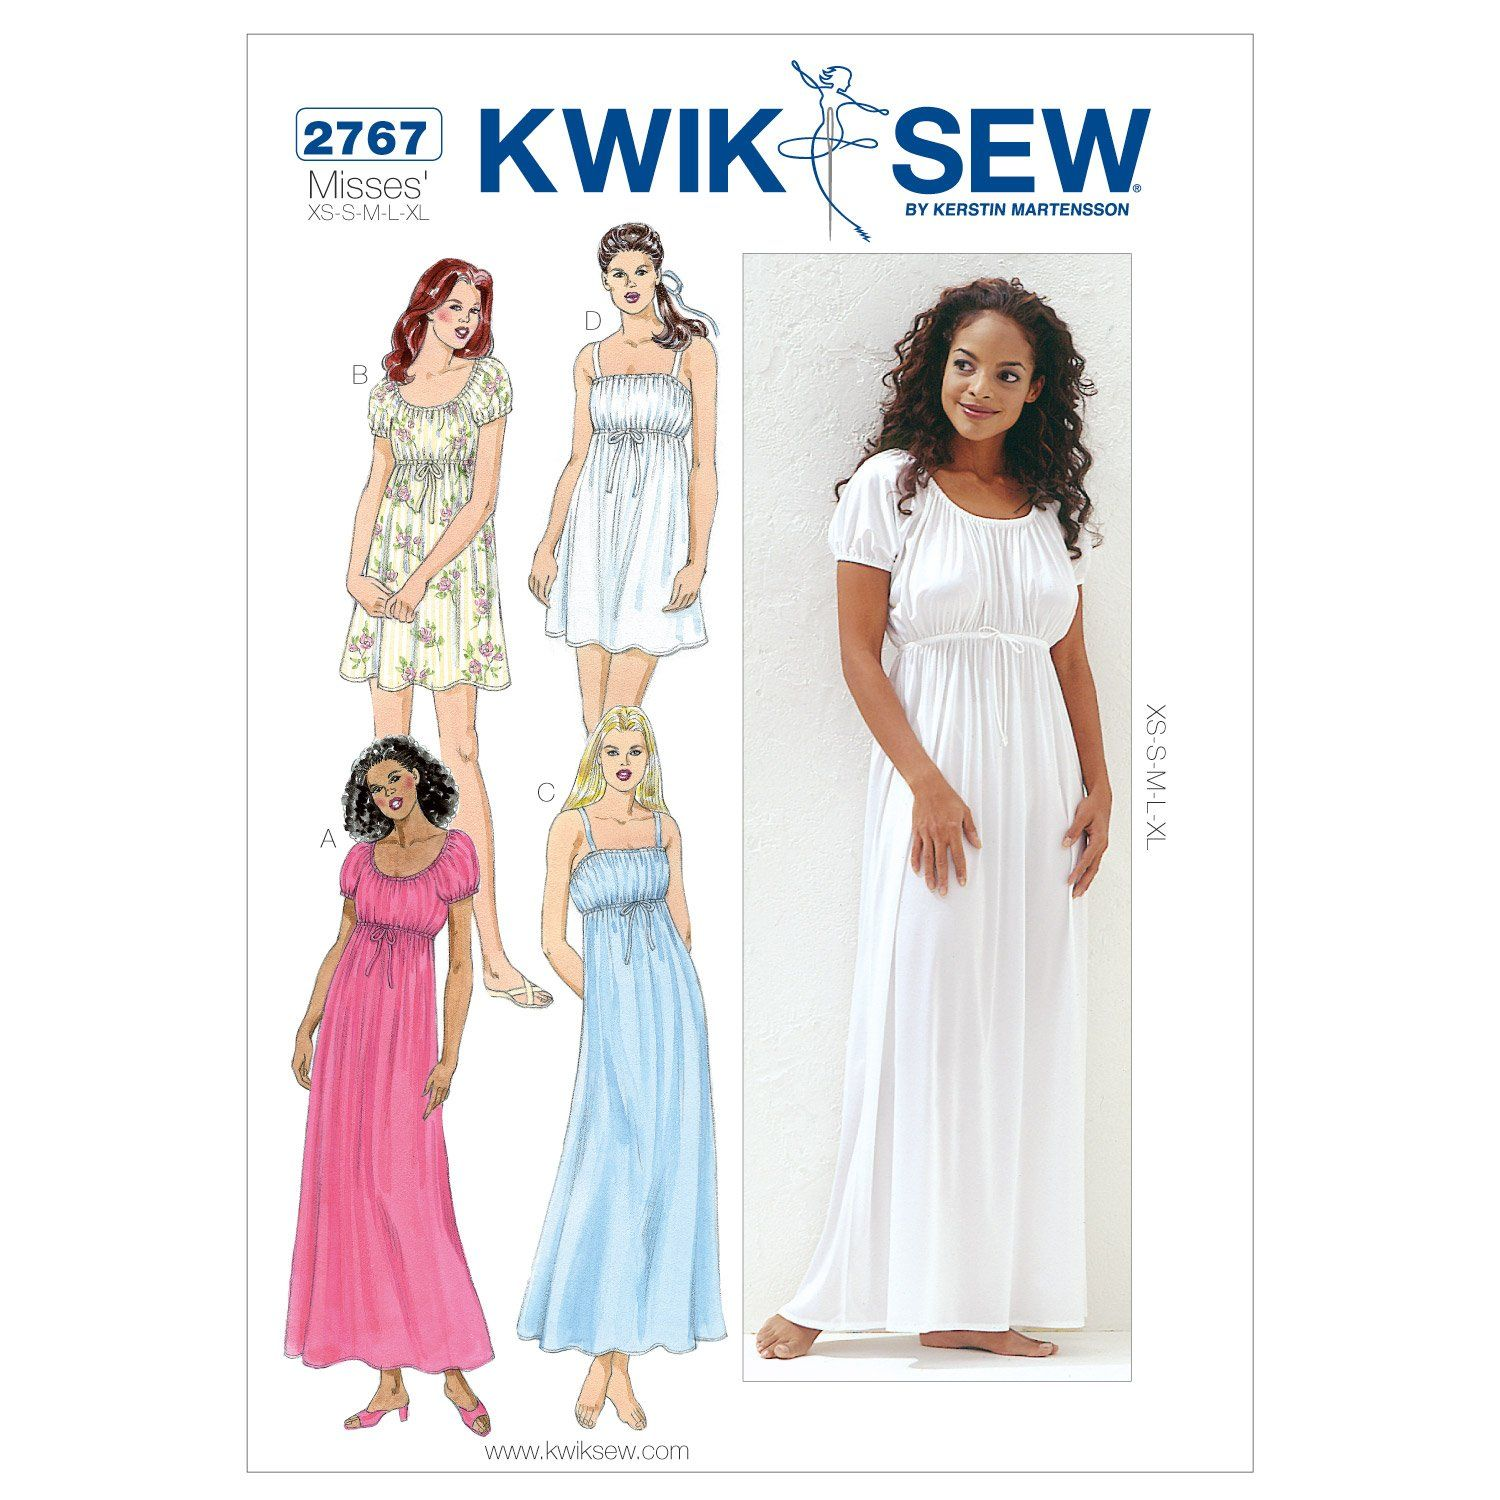 Amazon.com: Kwik Sew K2767 Nightgowns Sewing Pattern, Size XS-S-M-L ...